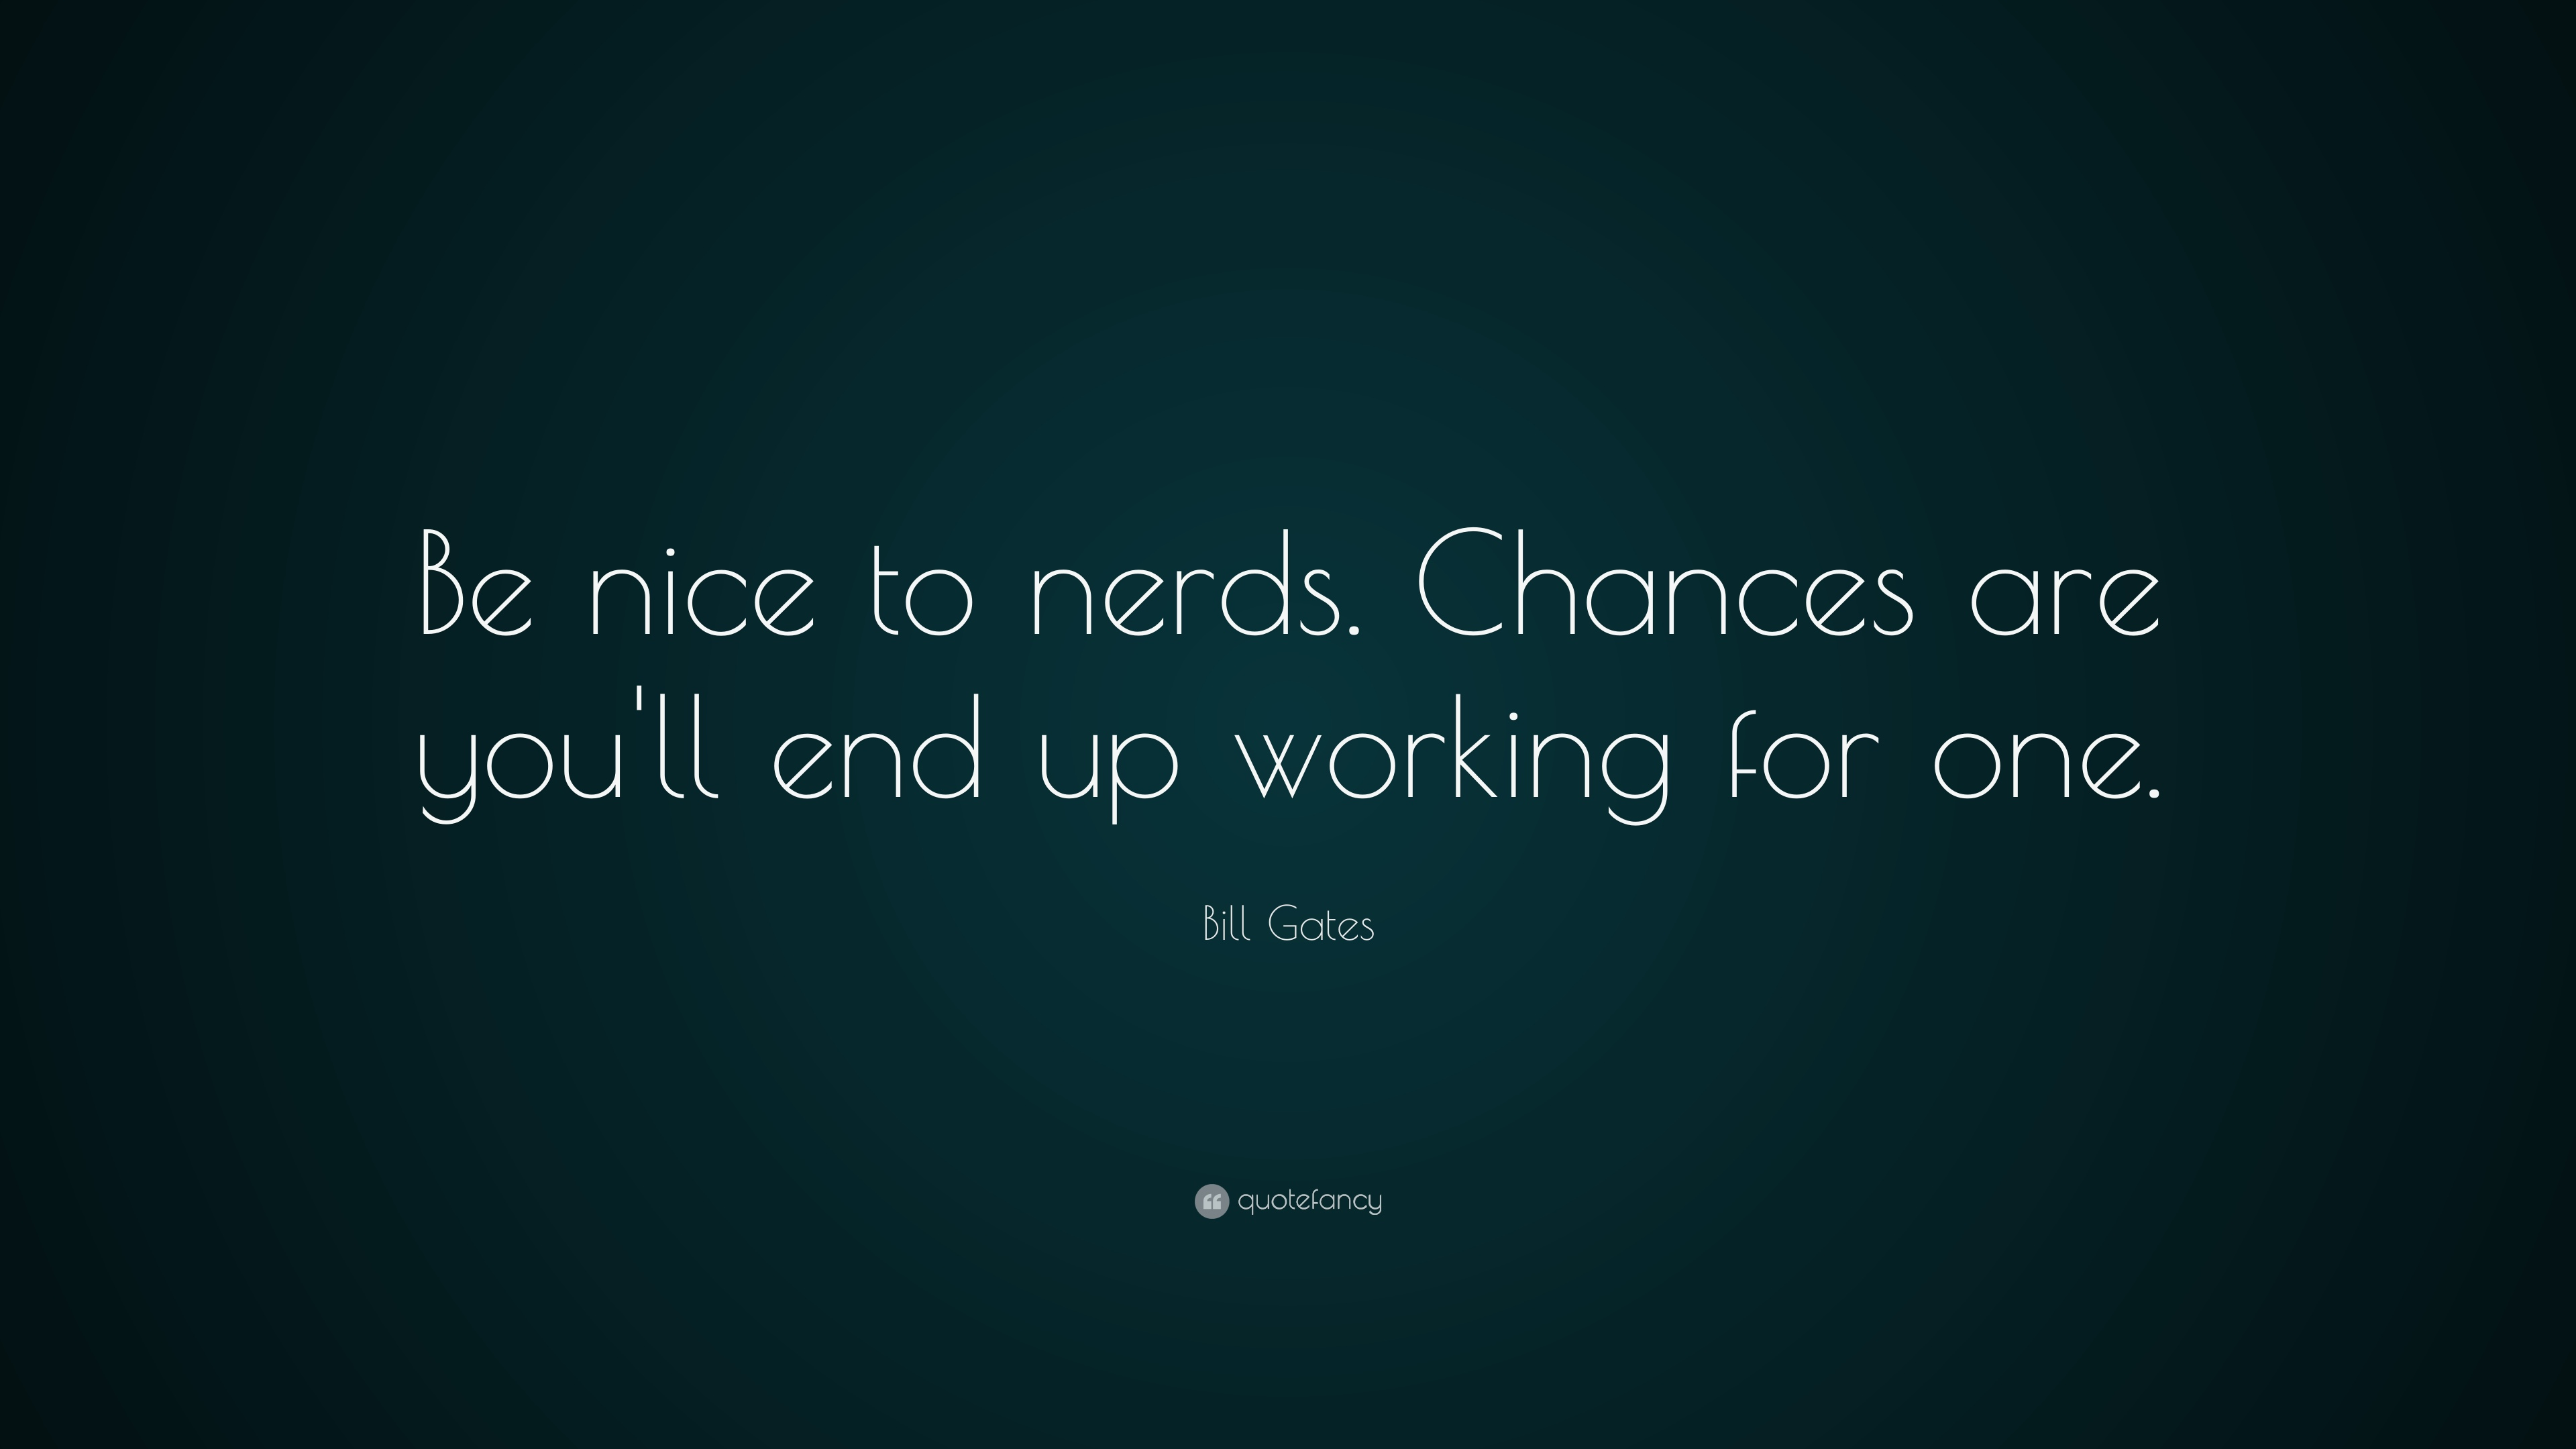 Chances Quotes Wallpaper Bill Gates Quote Be Nice To Nerds Chances Are You Ll